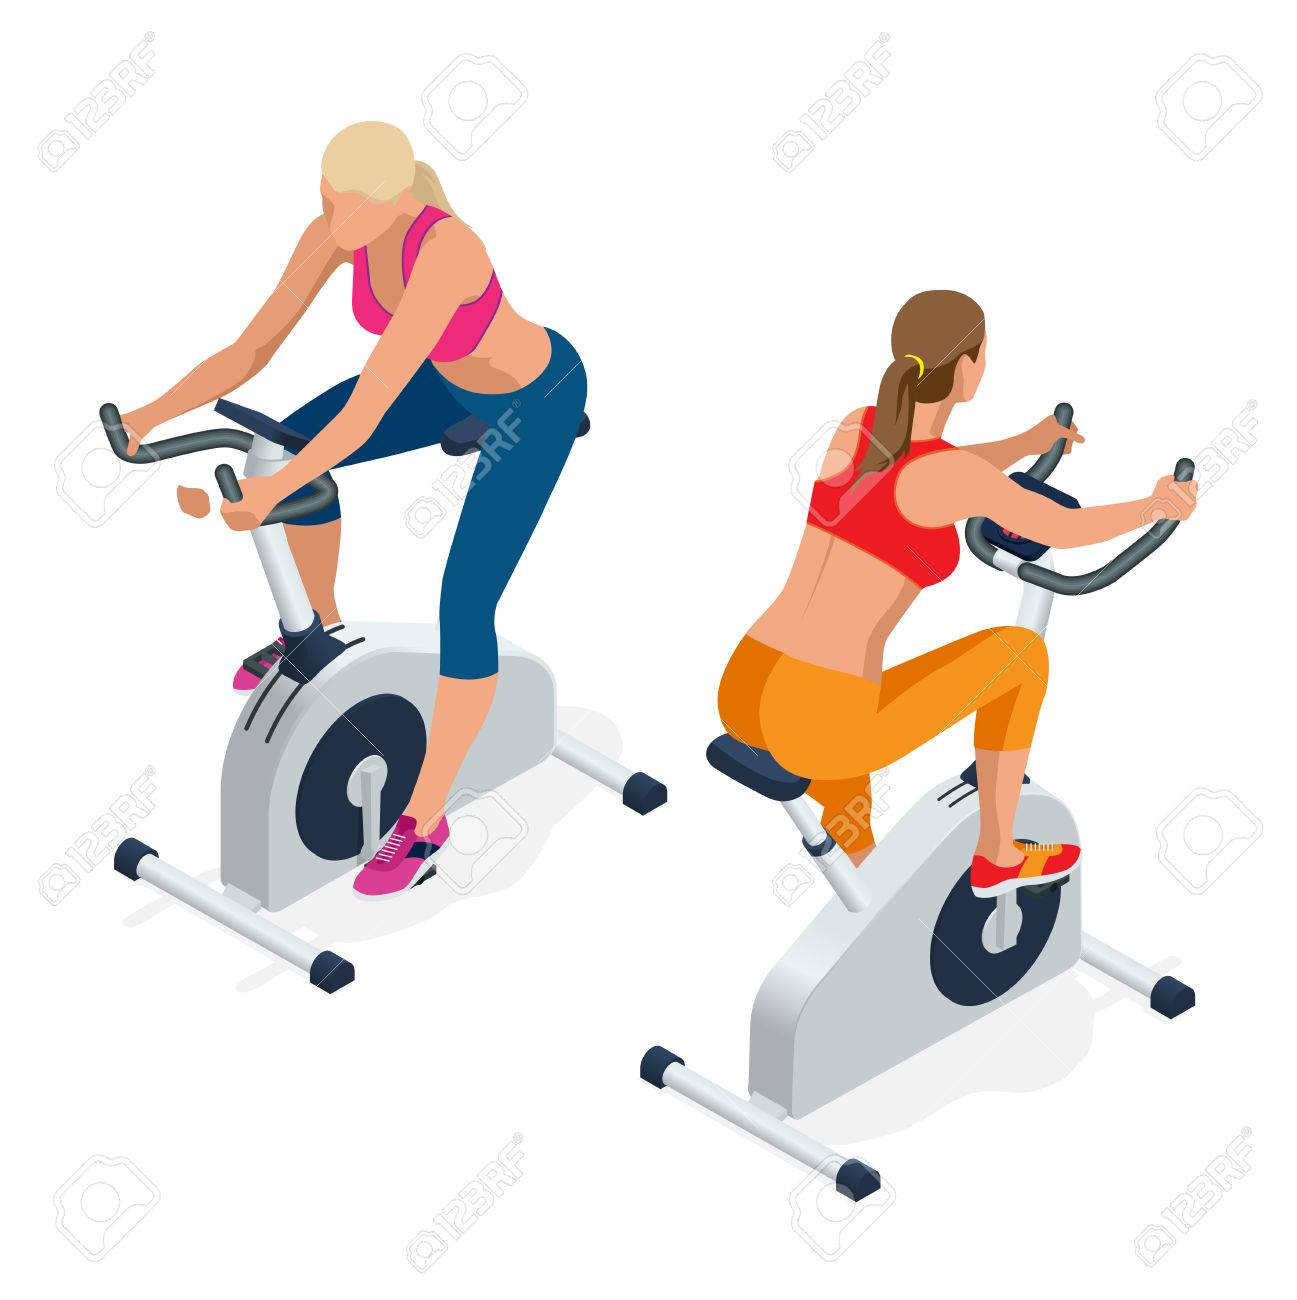 Fitness Woman Working Out On Exercise Bike At The Gym Isolated